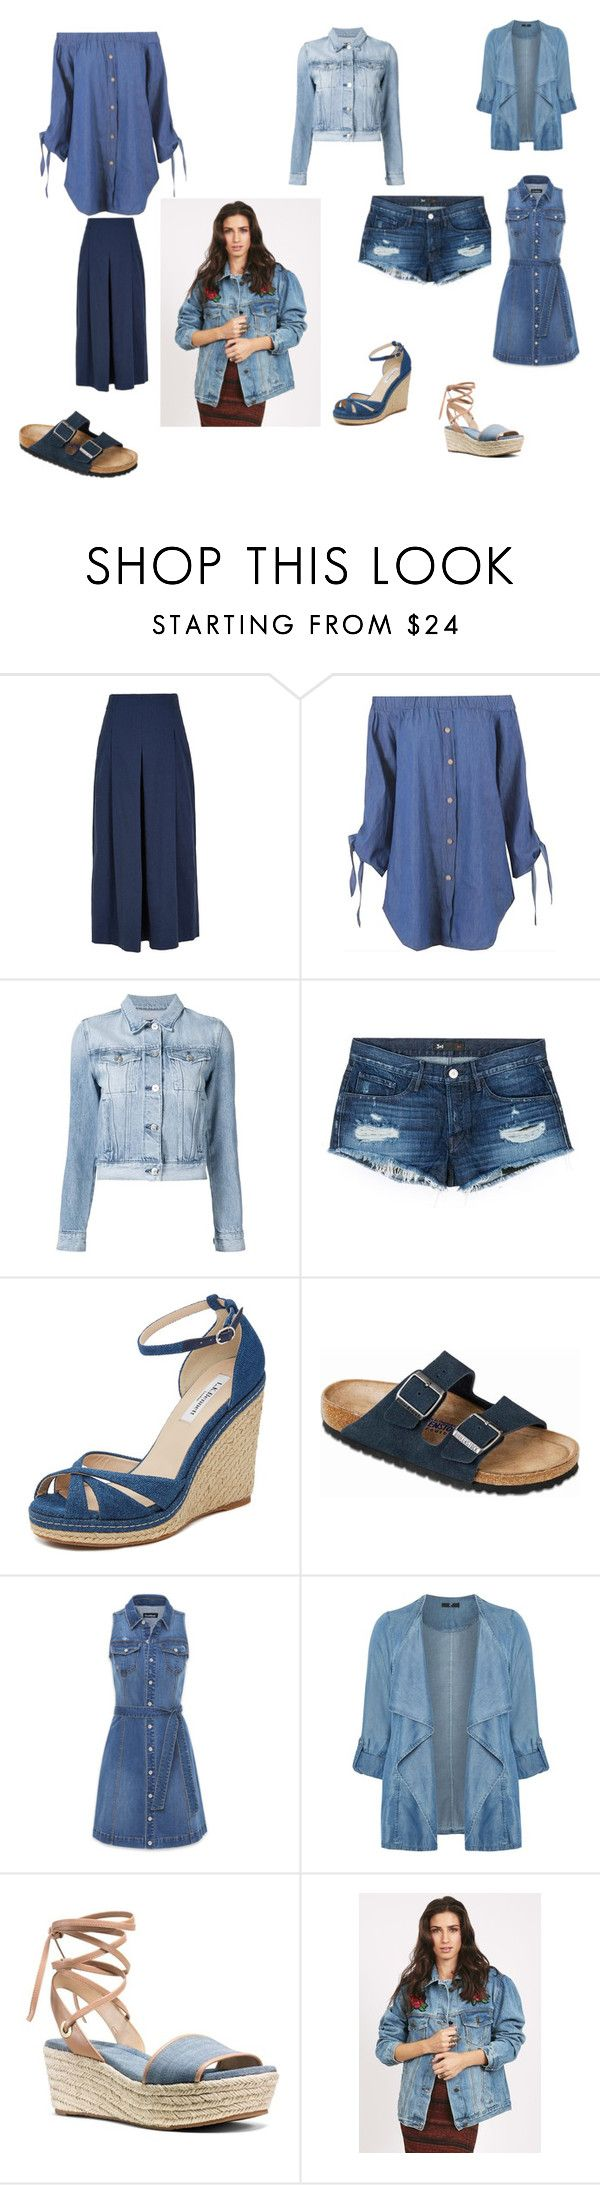 """Denim"" by amgbenyon ❤ liked on Polyvore featuring TIBI, 3x1, L.K.Bennett, Birkenstock, Bebe, Evans, MICHAEL Michael Kors and plus size clothing"